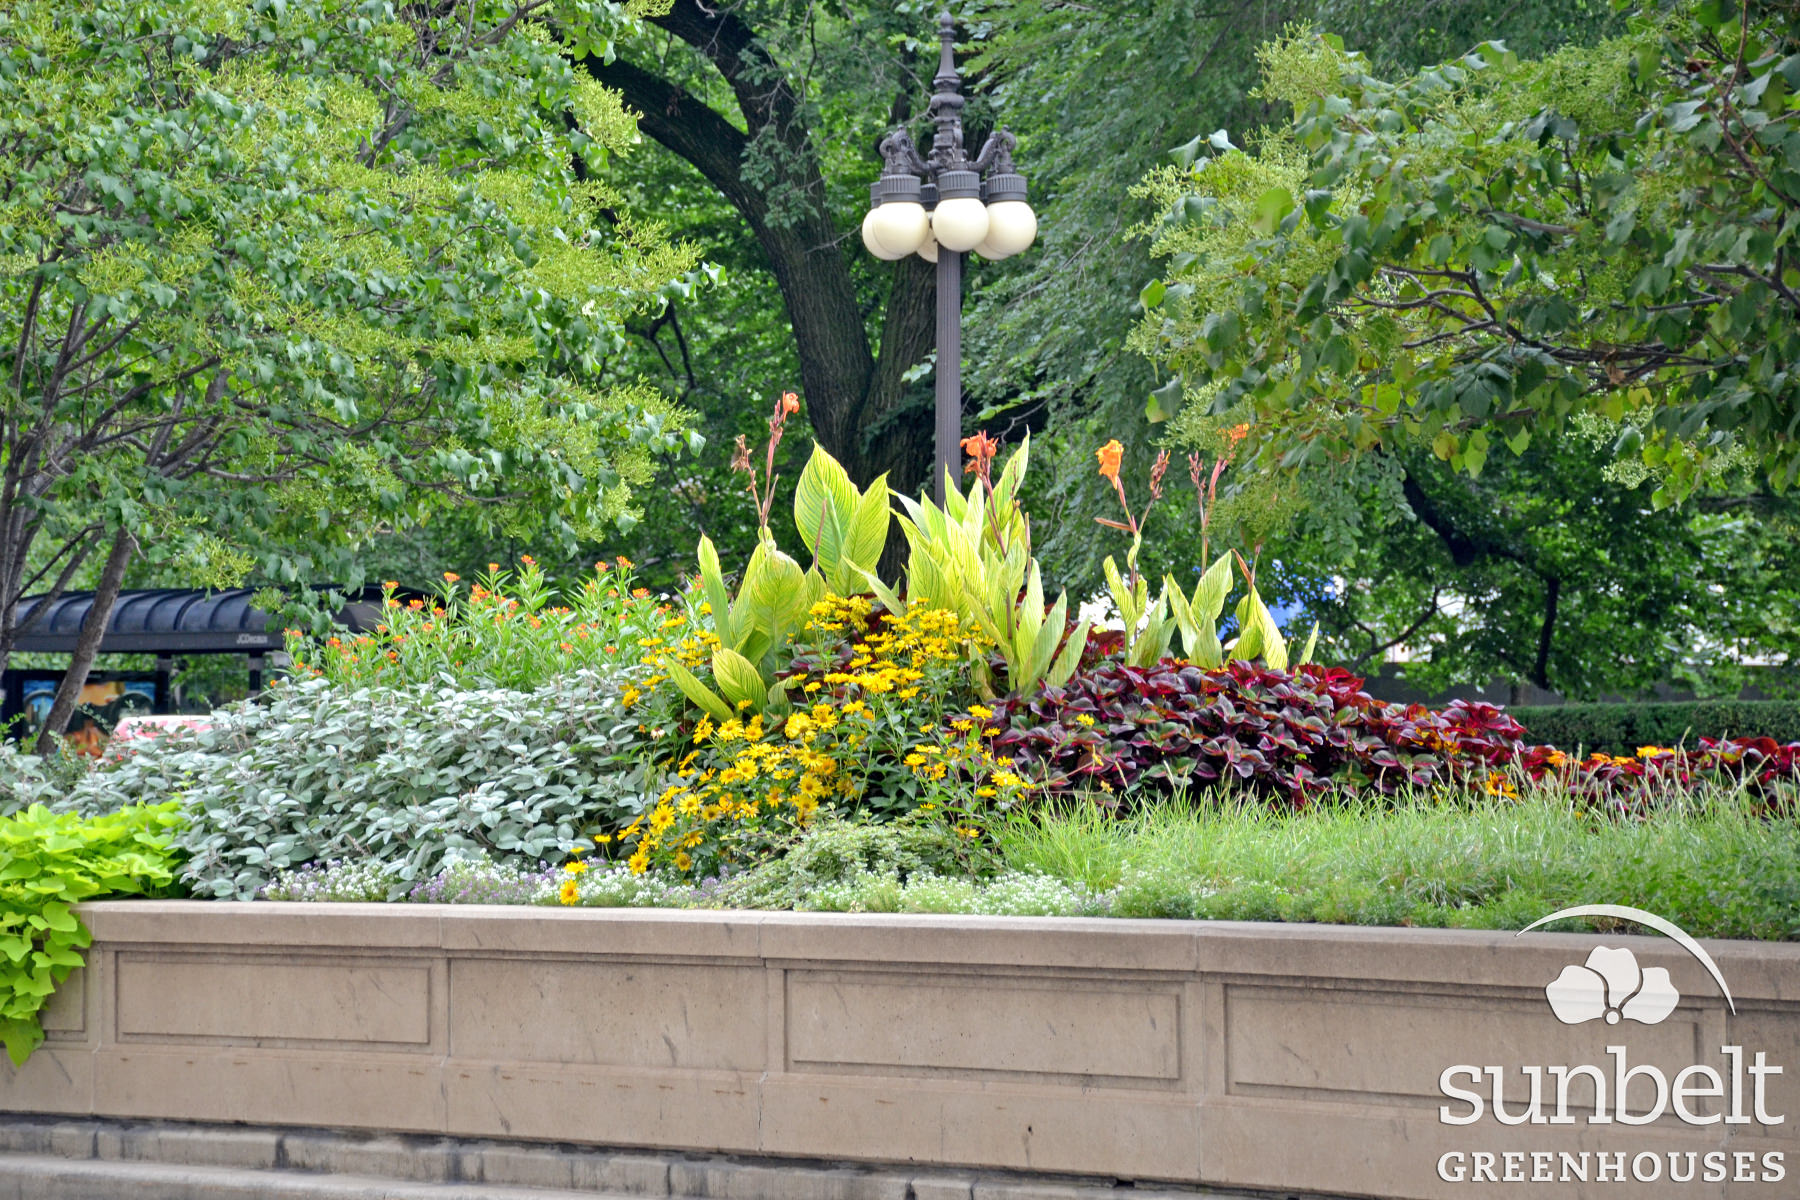 2015-08-19-chicago-landscaping-05.jpg